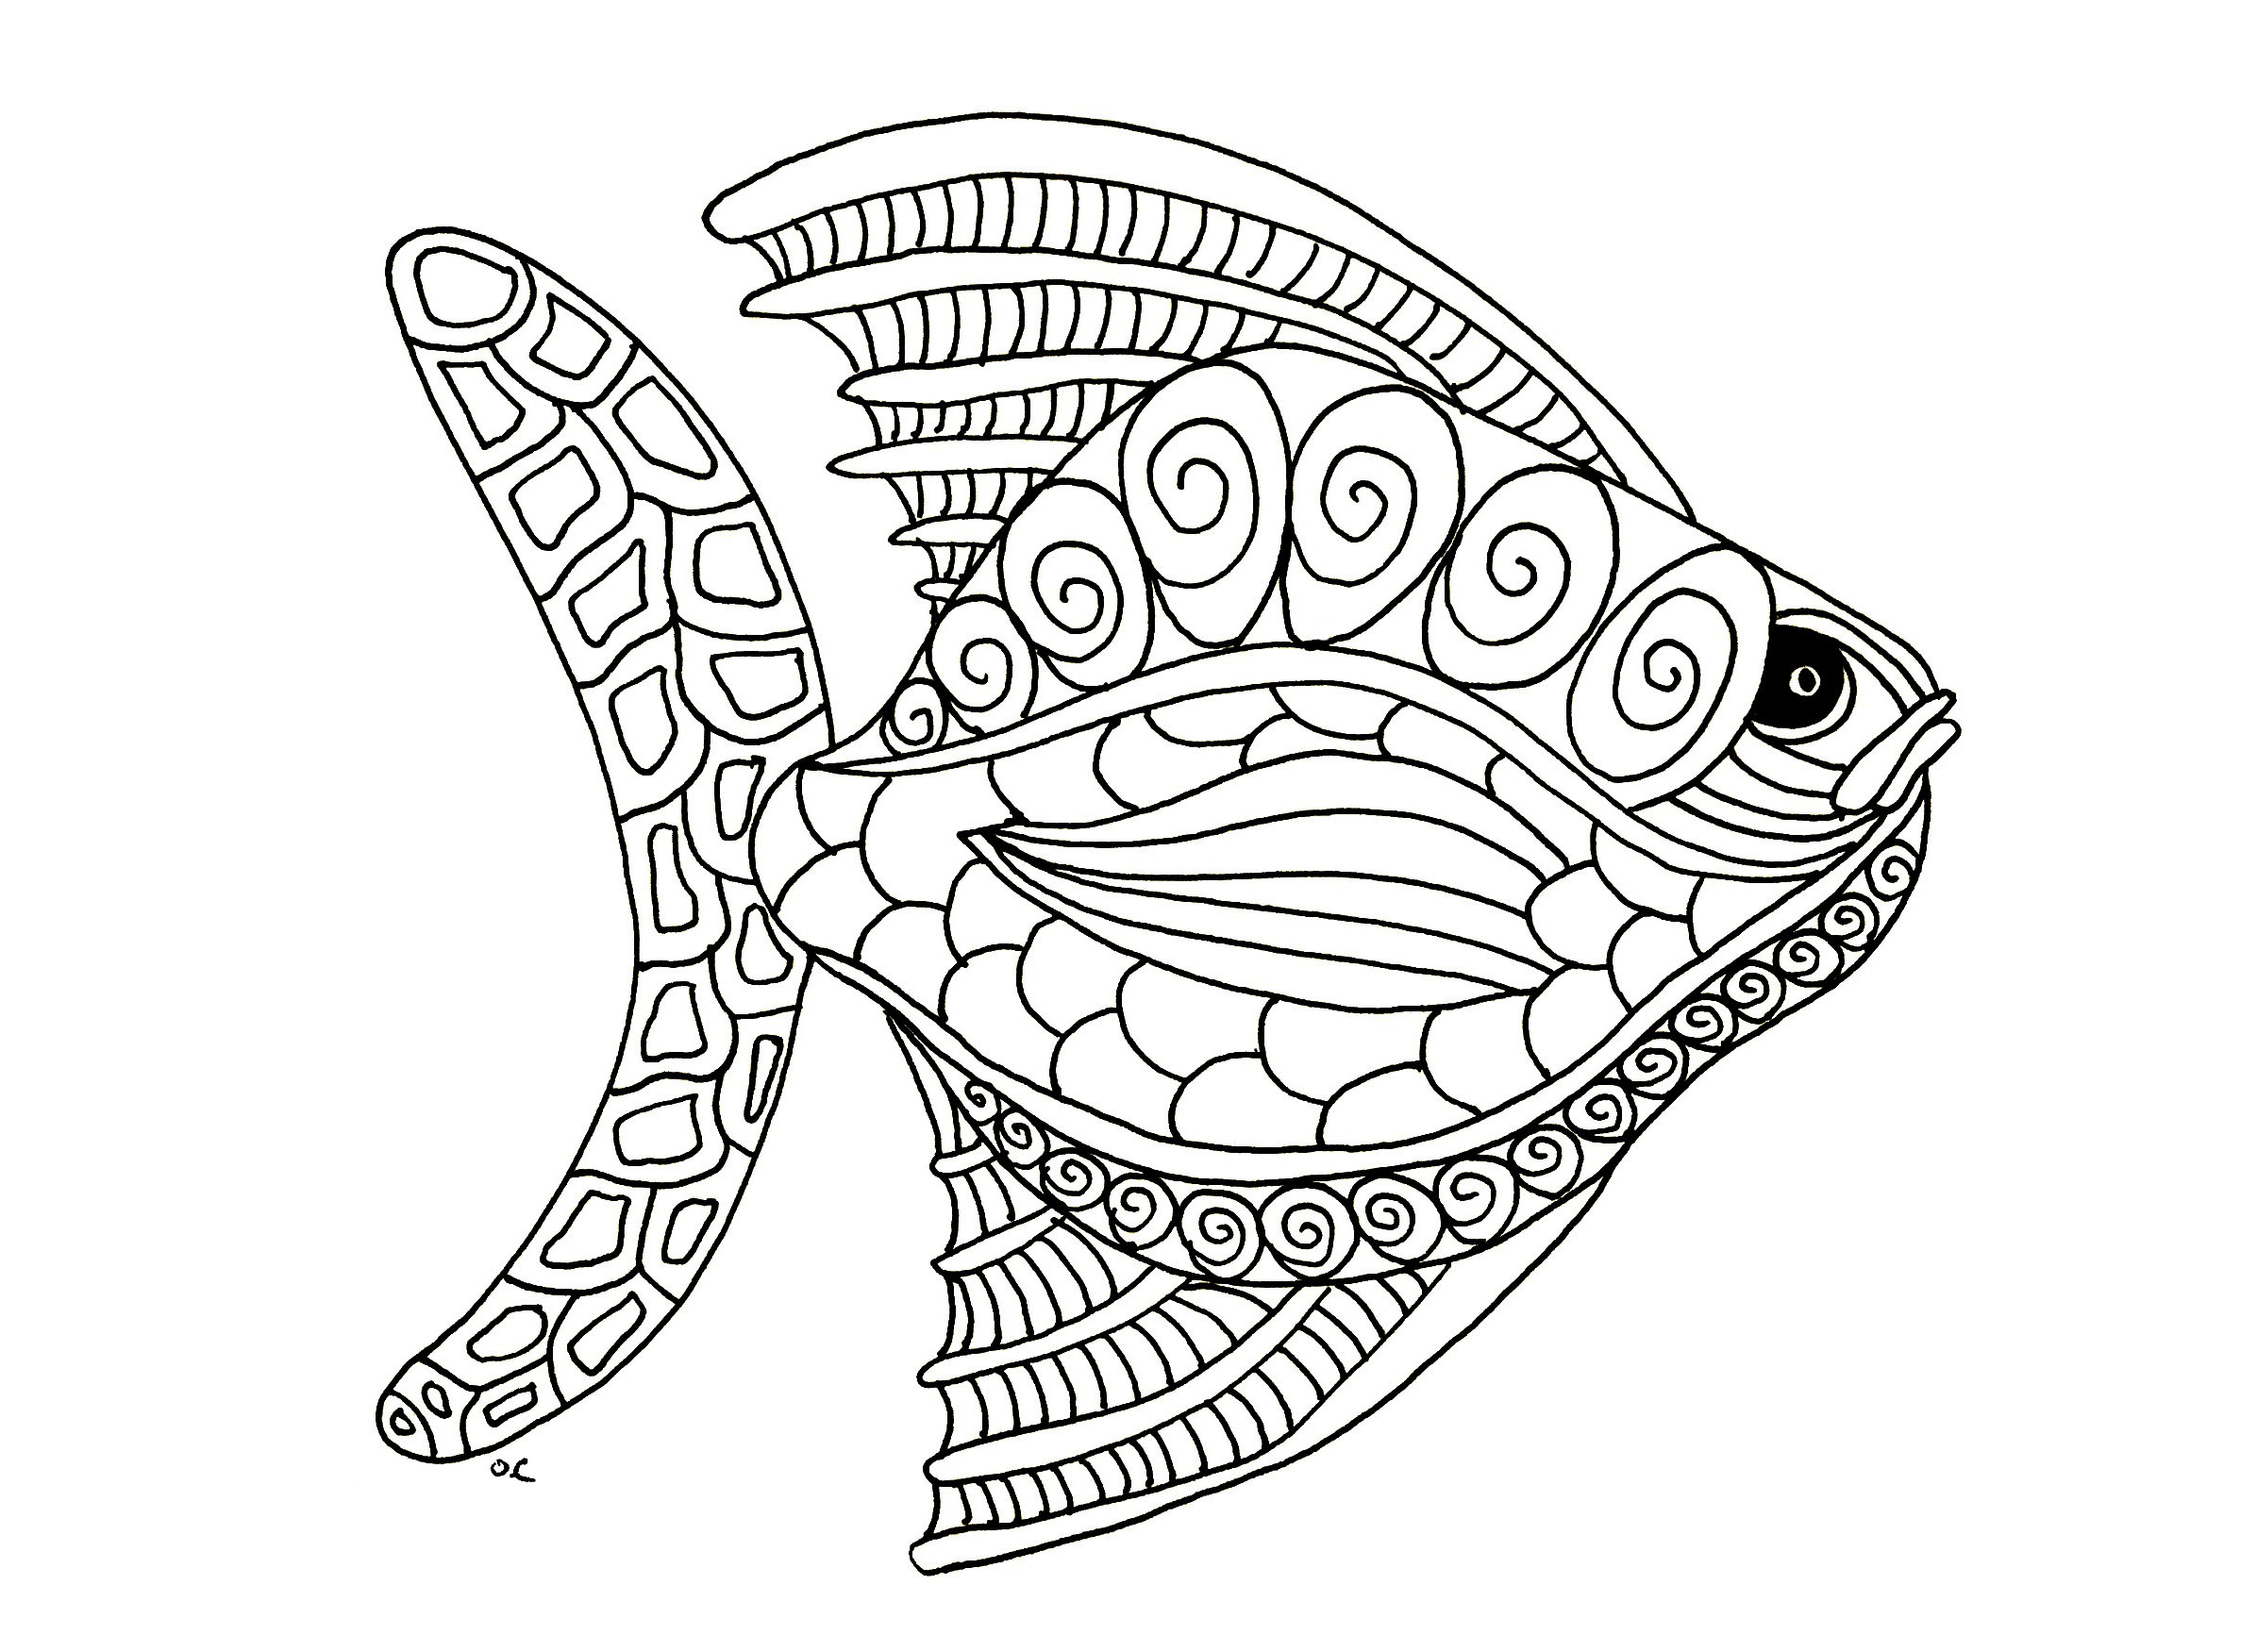 Fishes - Coloring Pages for Adults